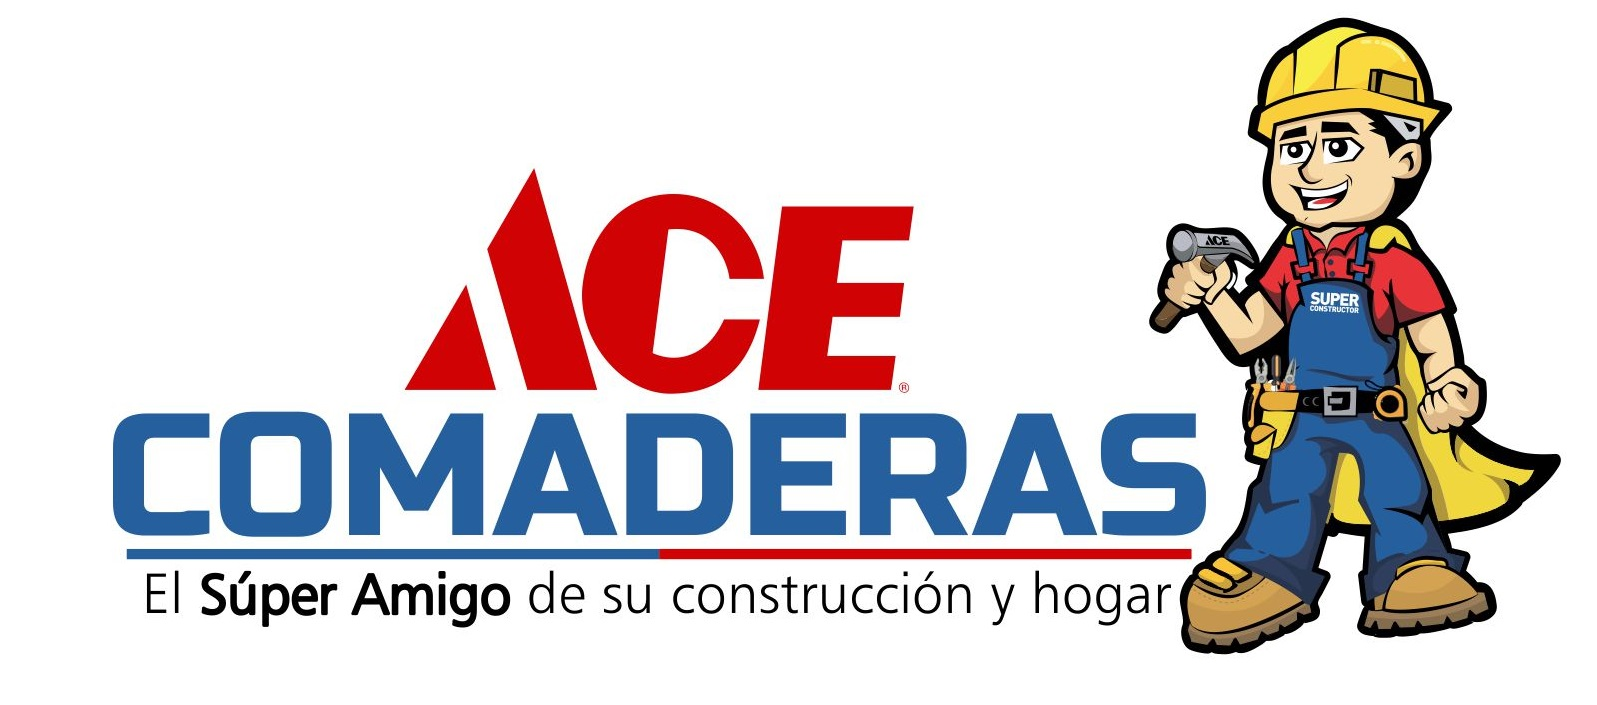 Ace Comaderas